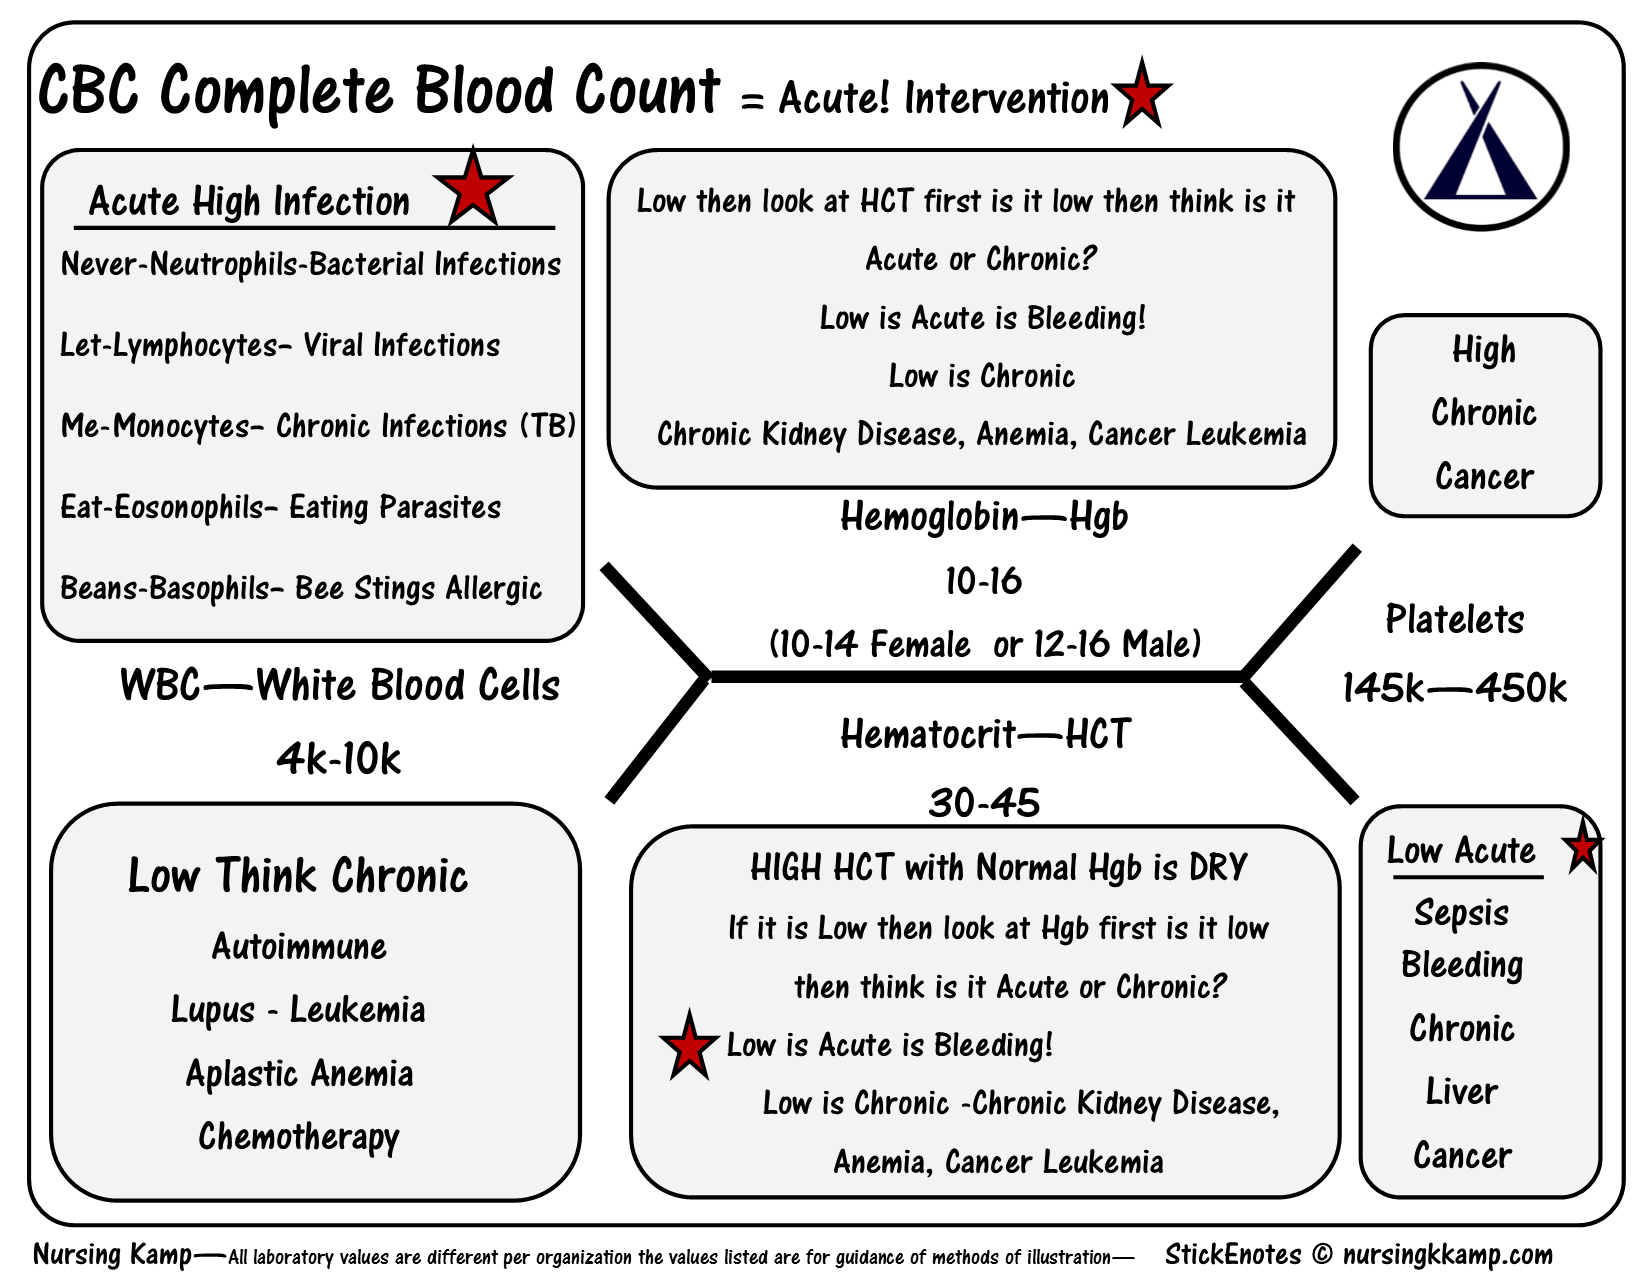 Nursing kamp the nurses notes on nursing the nurses notes cbc complete blood count wbc platelets hgb hct bmp fishbone diagram explaining labs from the blood book theses are the labs you should know hyponatrem ccuart Choice Image